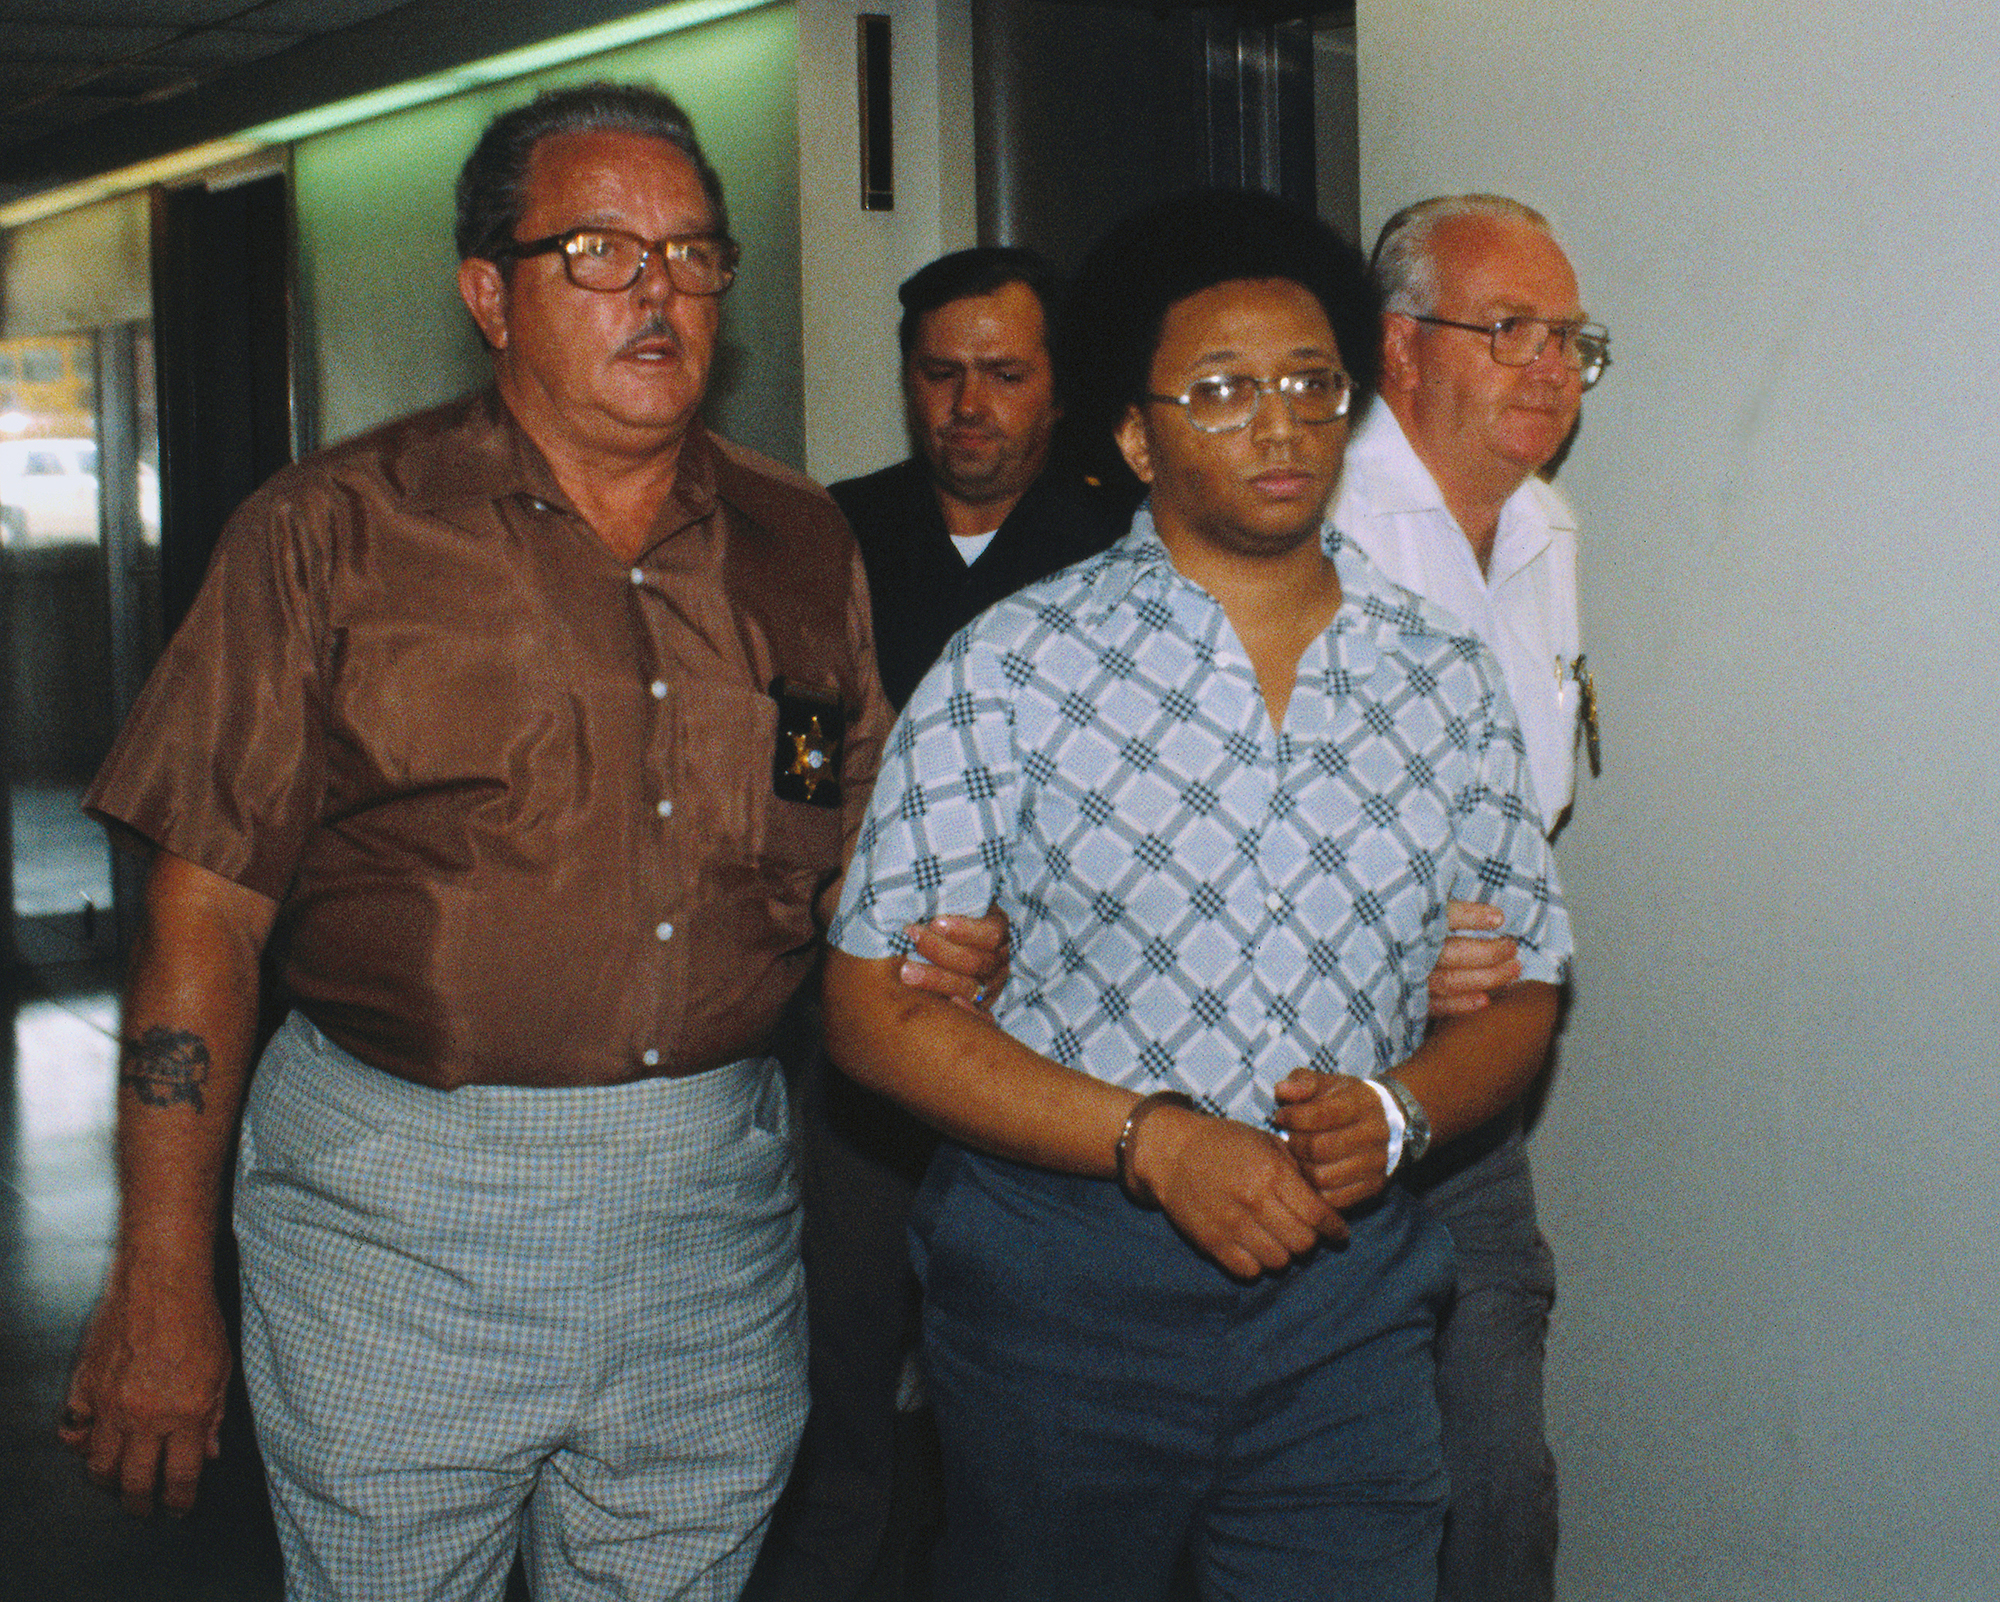 Men Leading Wayne Williams in Handcuffs